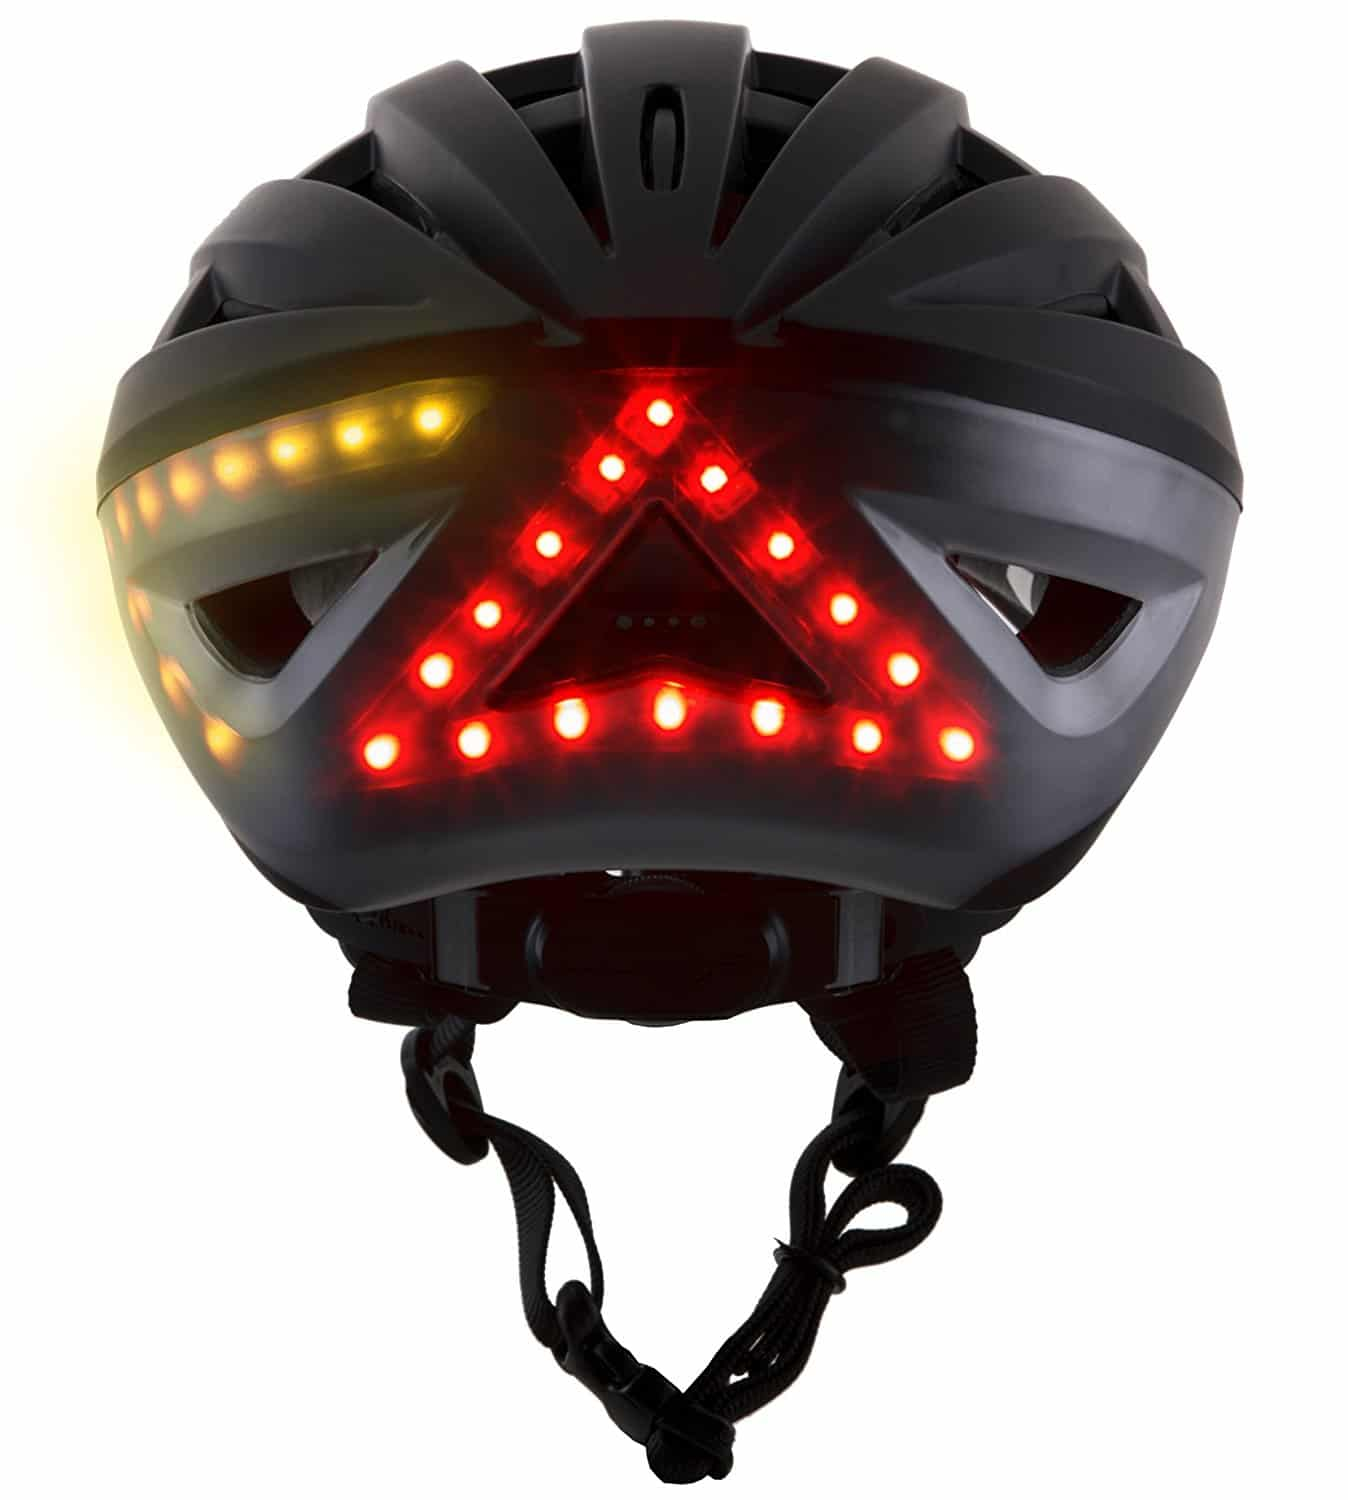 best smart bike helmets - Best smart bike helmets